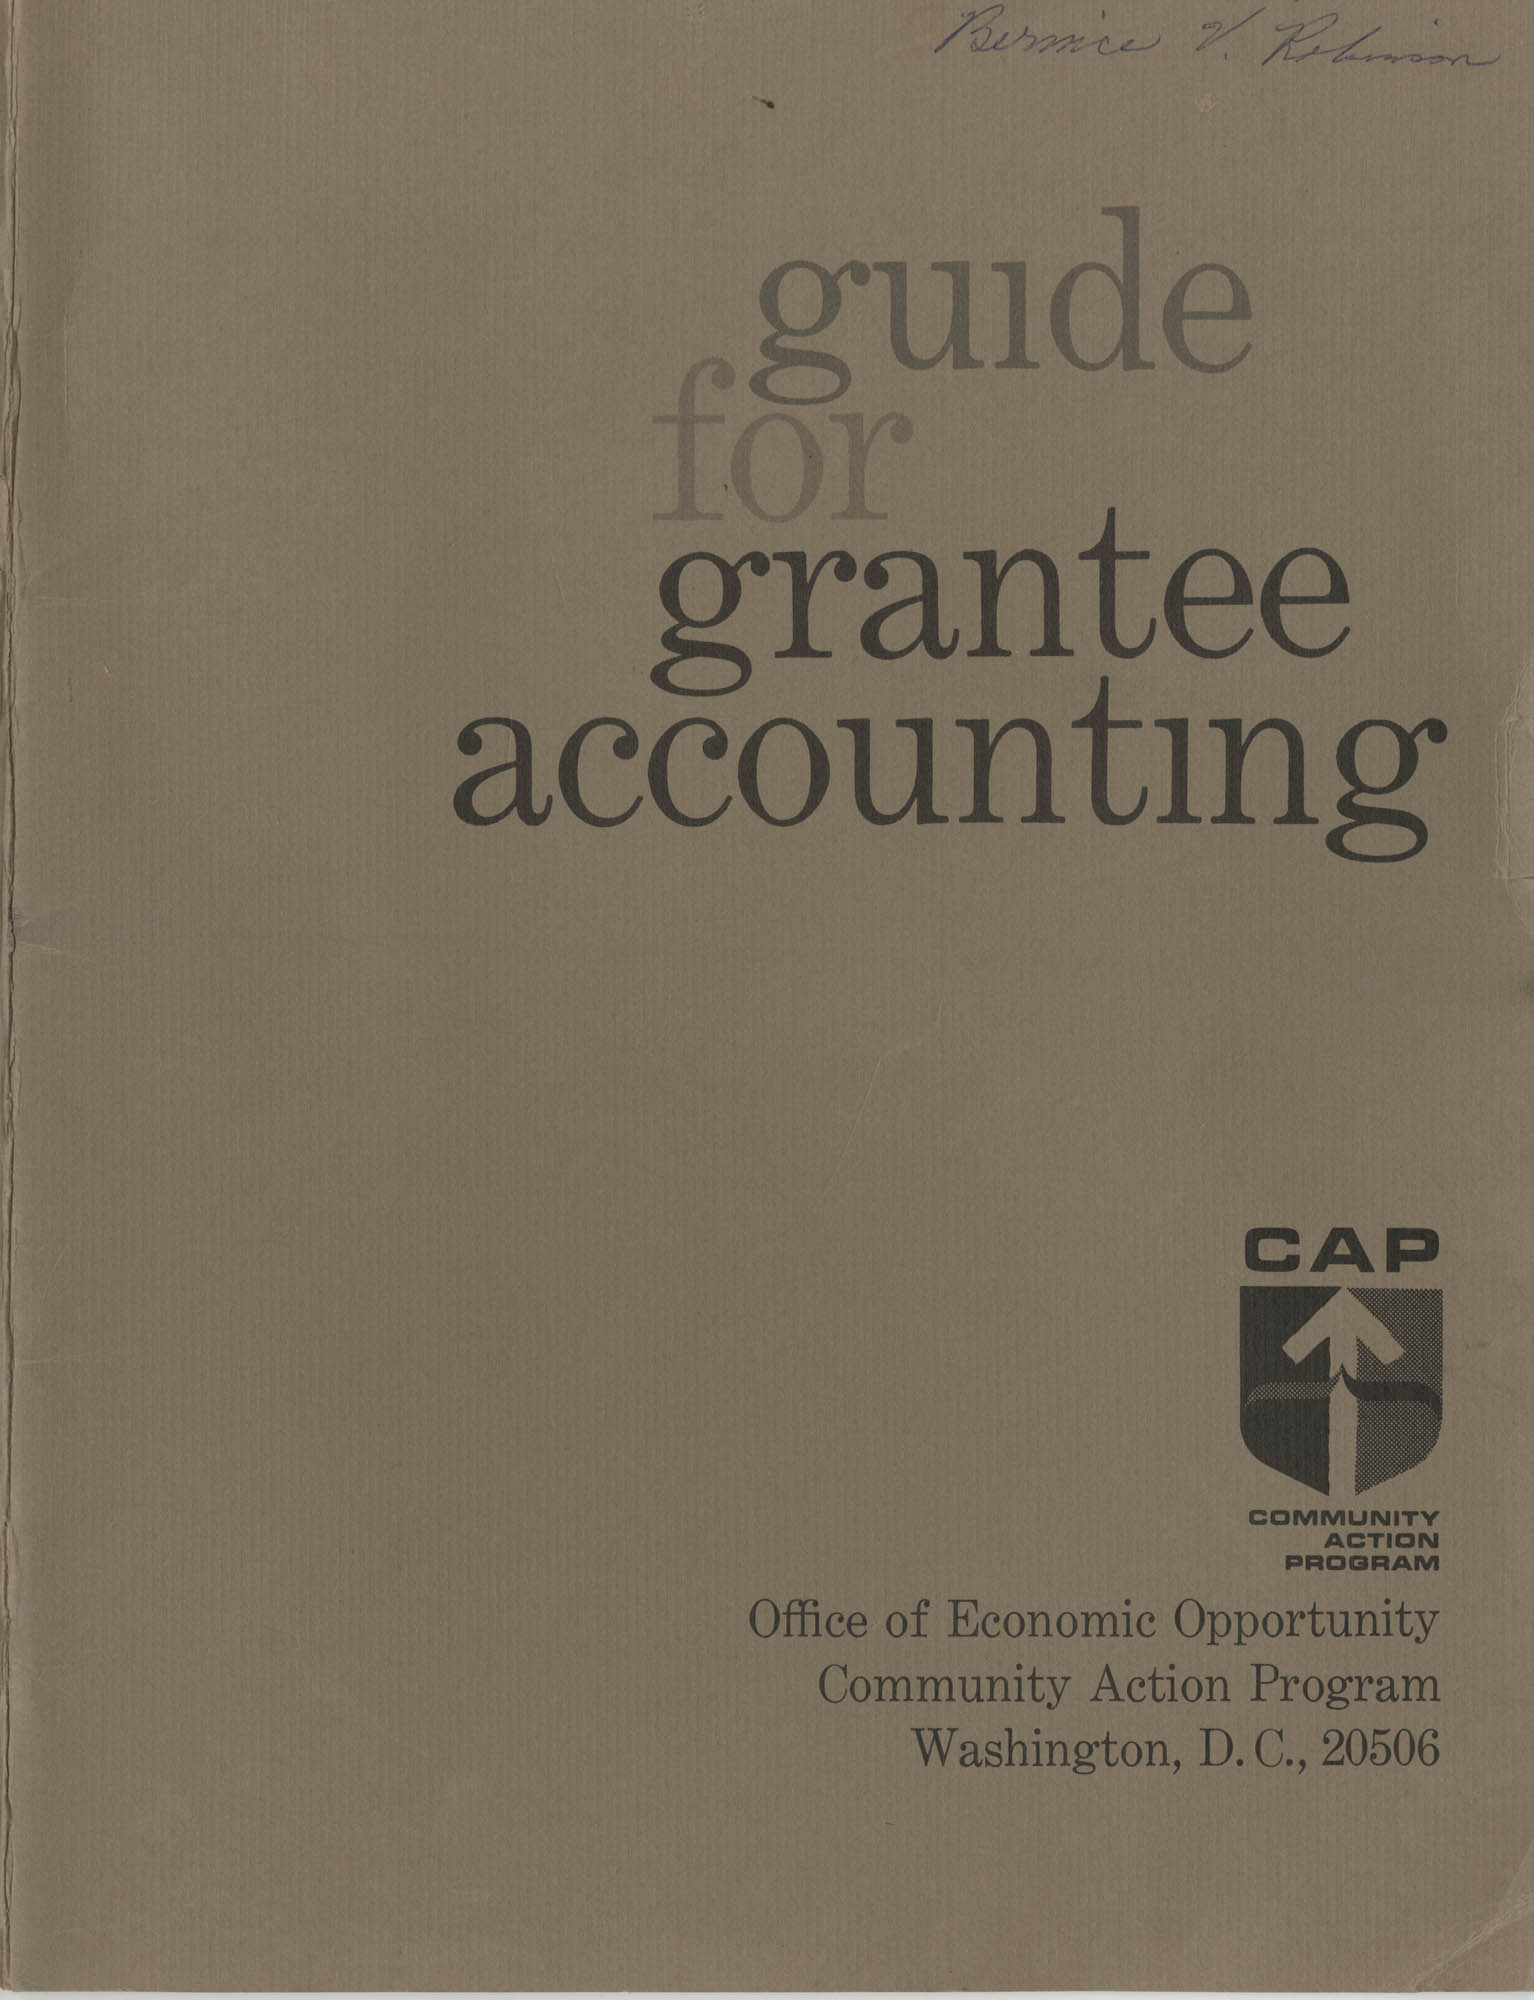 Guide for Grantee Accounting